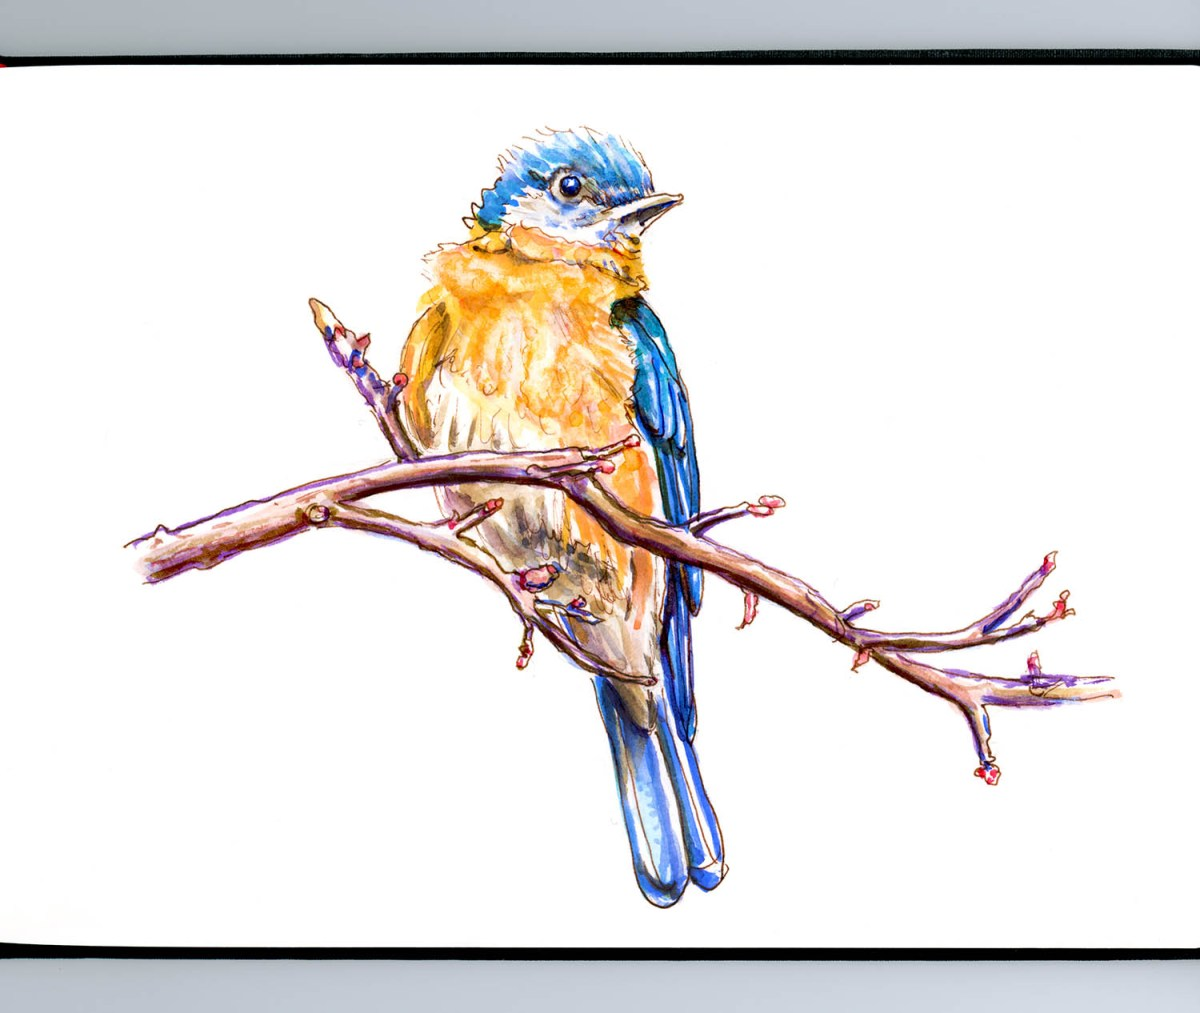 #WorldWatercolorGroup - Day 16 - A Bird In A Tree - Bluebird - Doodlewash